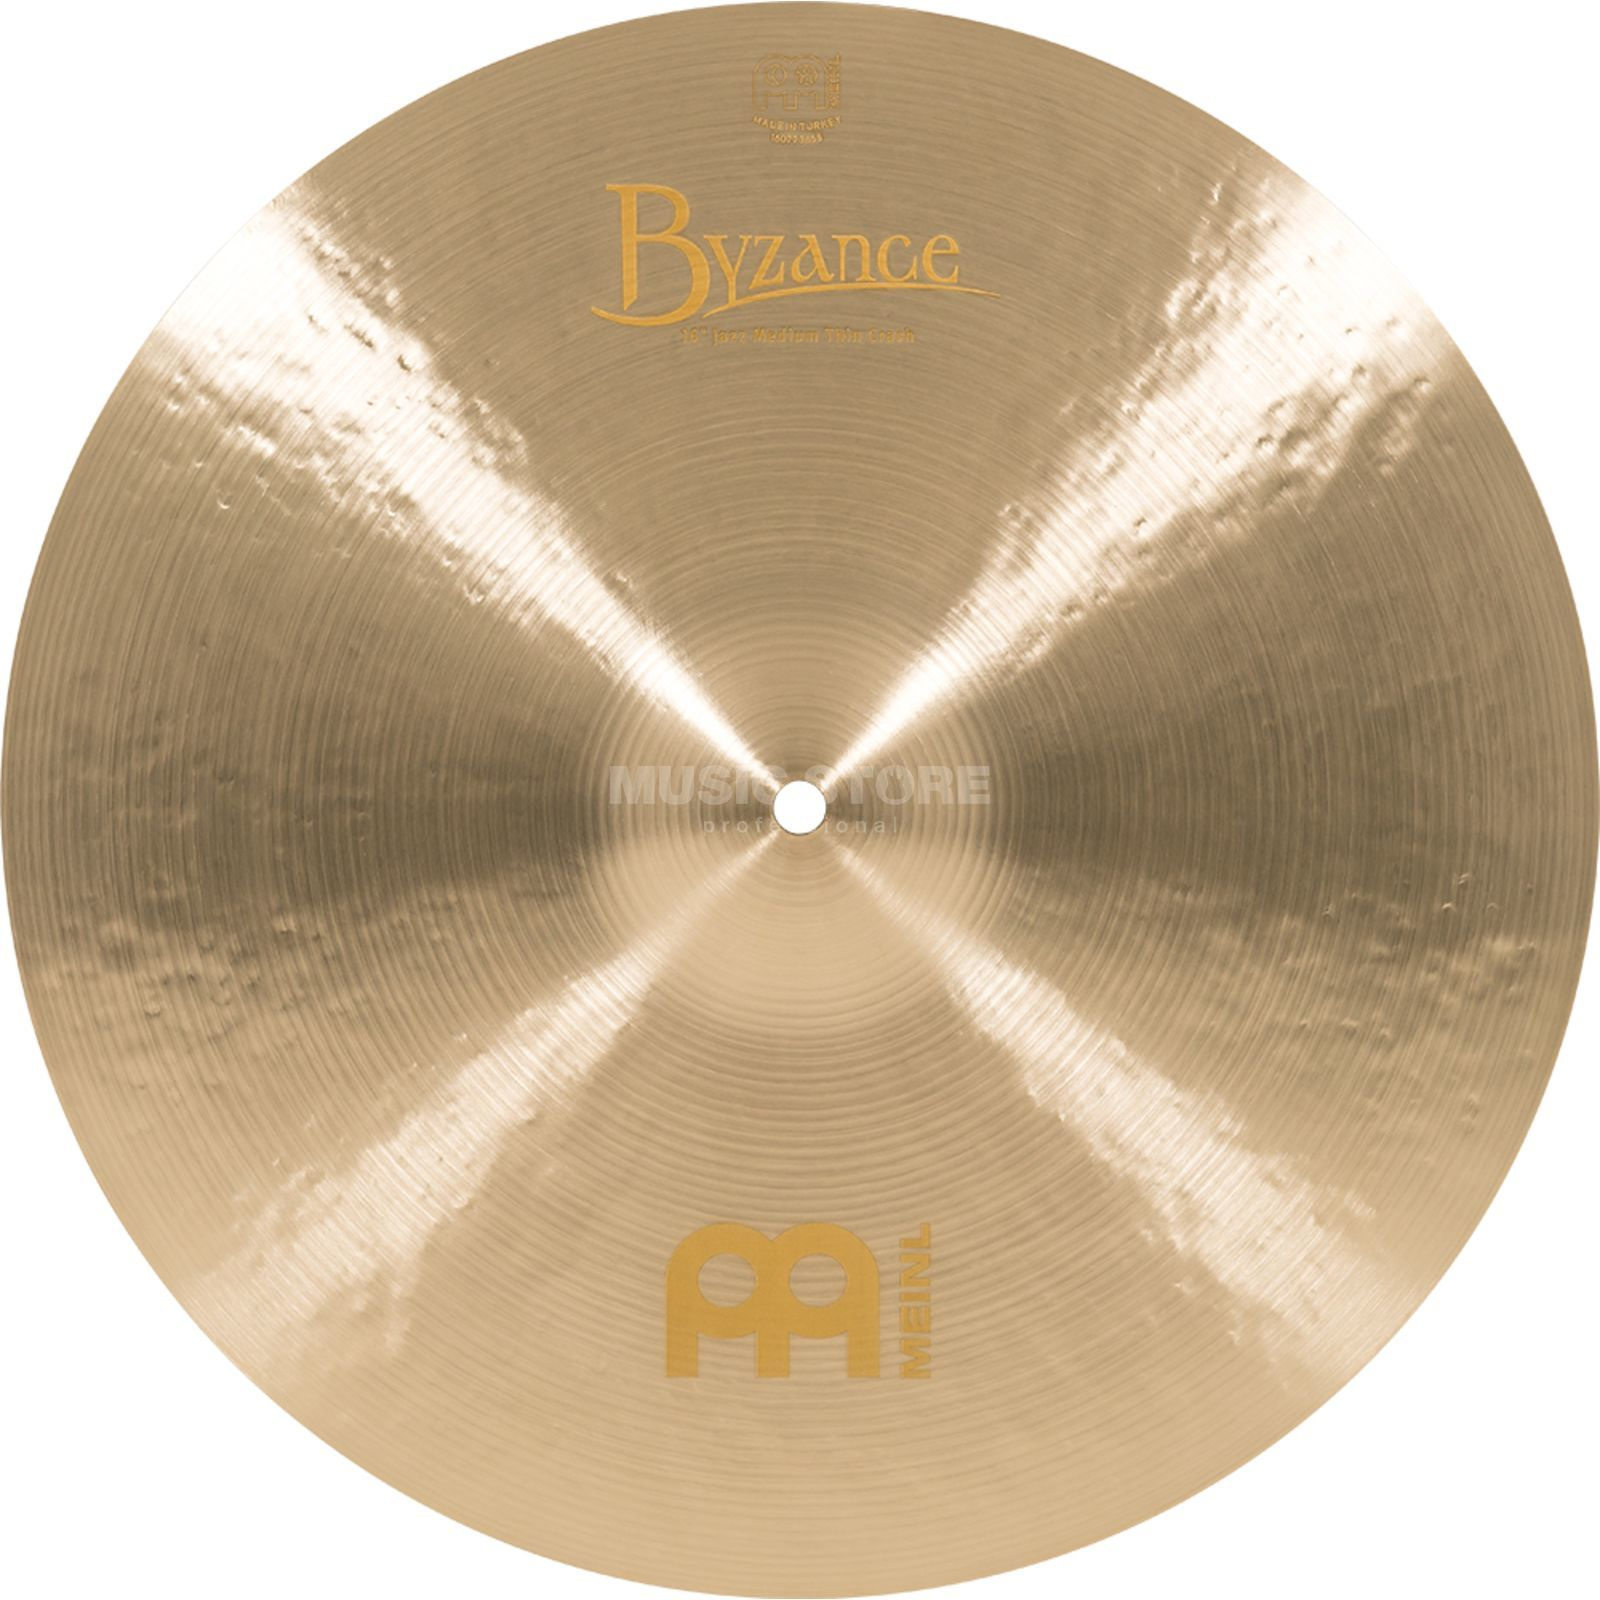 "Meinl Byzance Medium Thin Crash 16"" B16JMTC, Jazz Finish Produktbild"